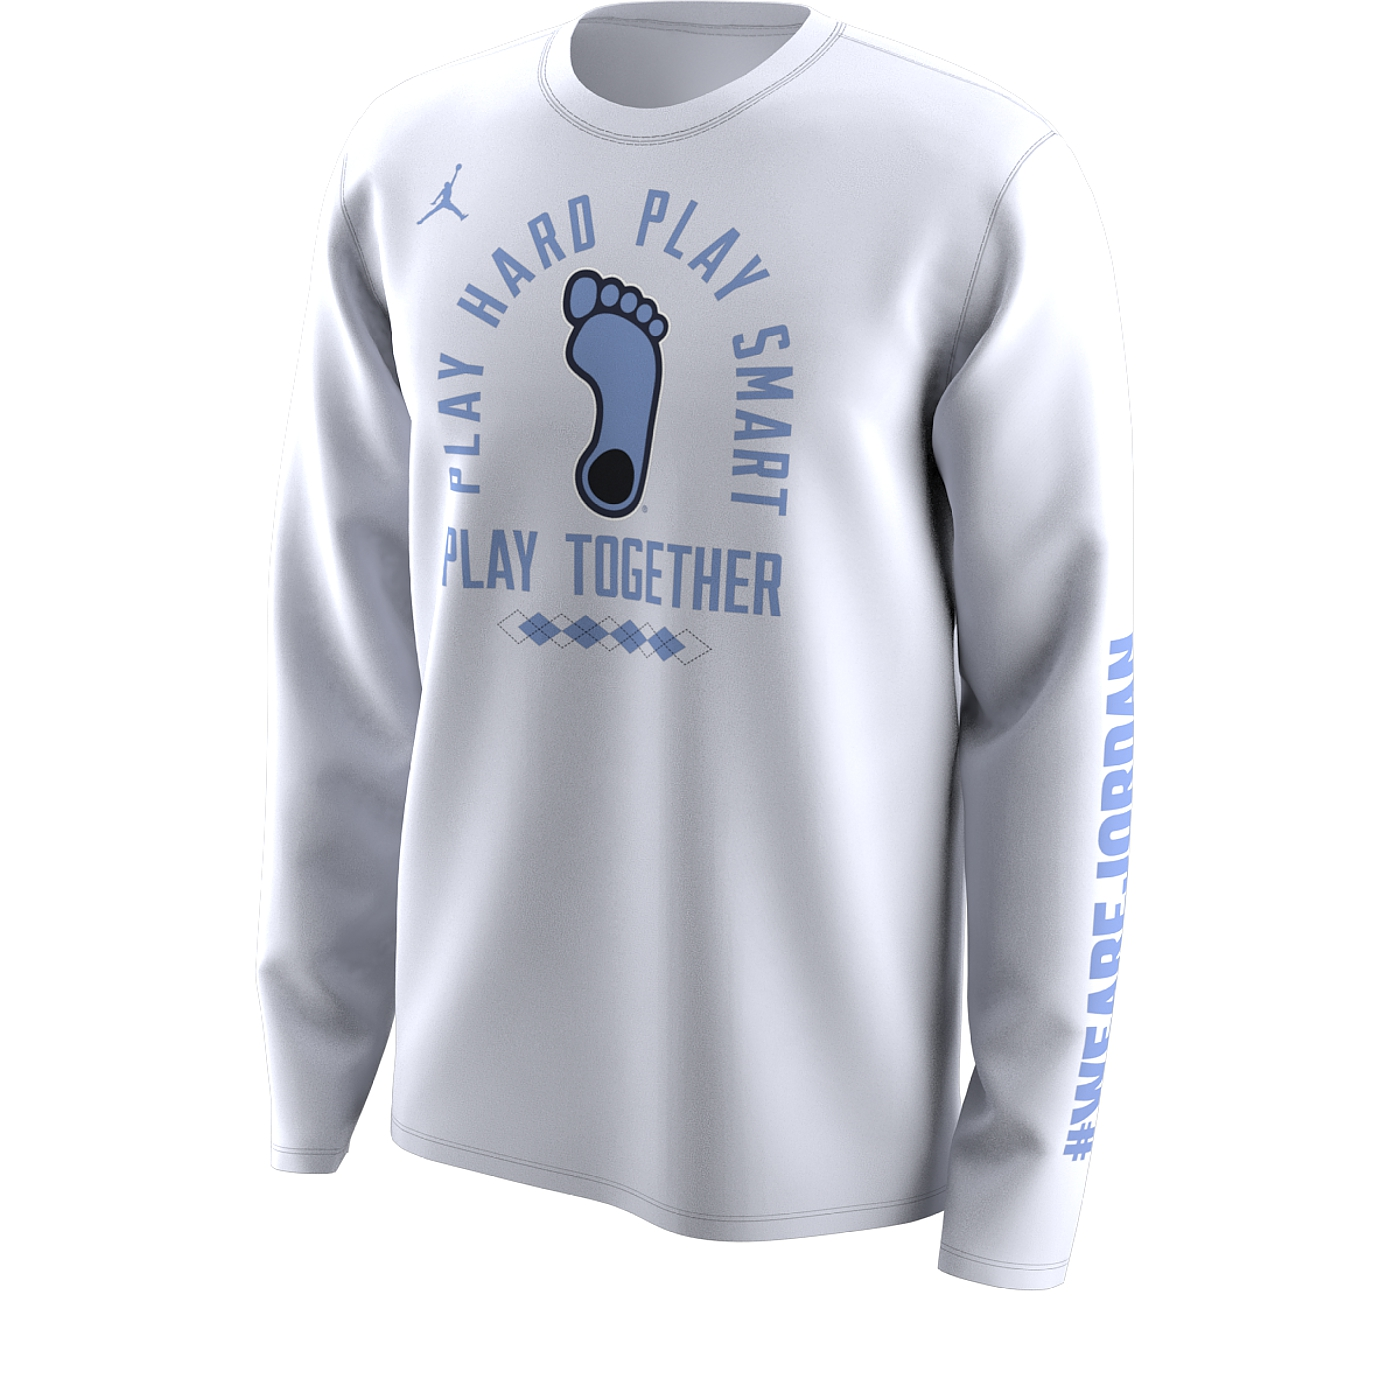 b714ba14 Youth Nike Wrestling Shirts